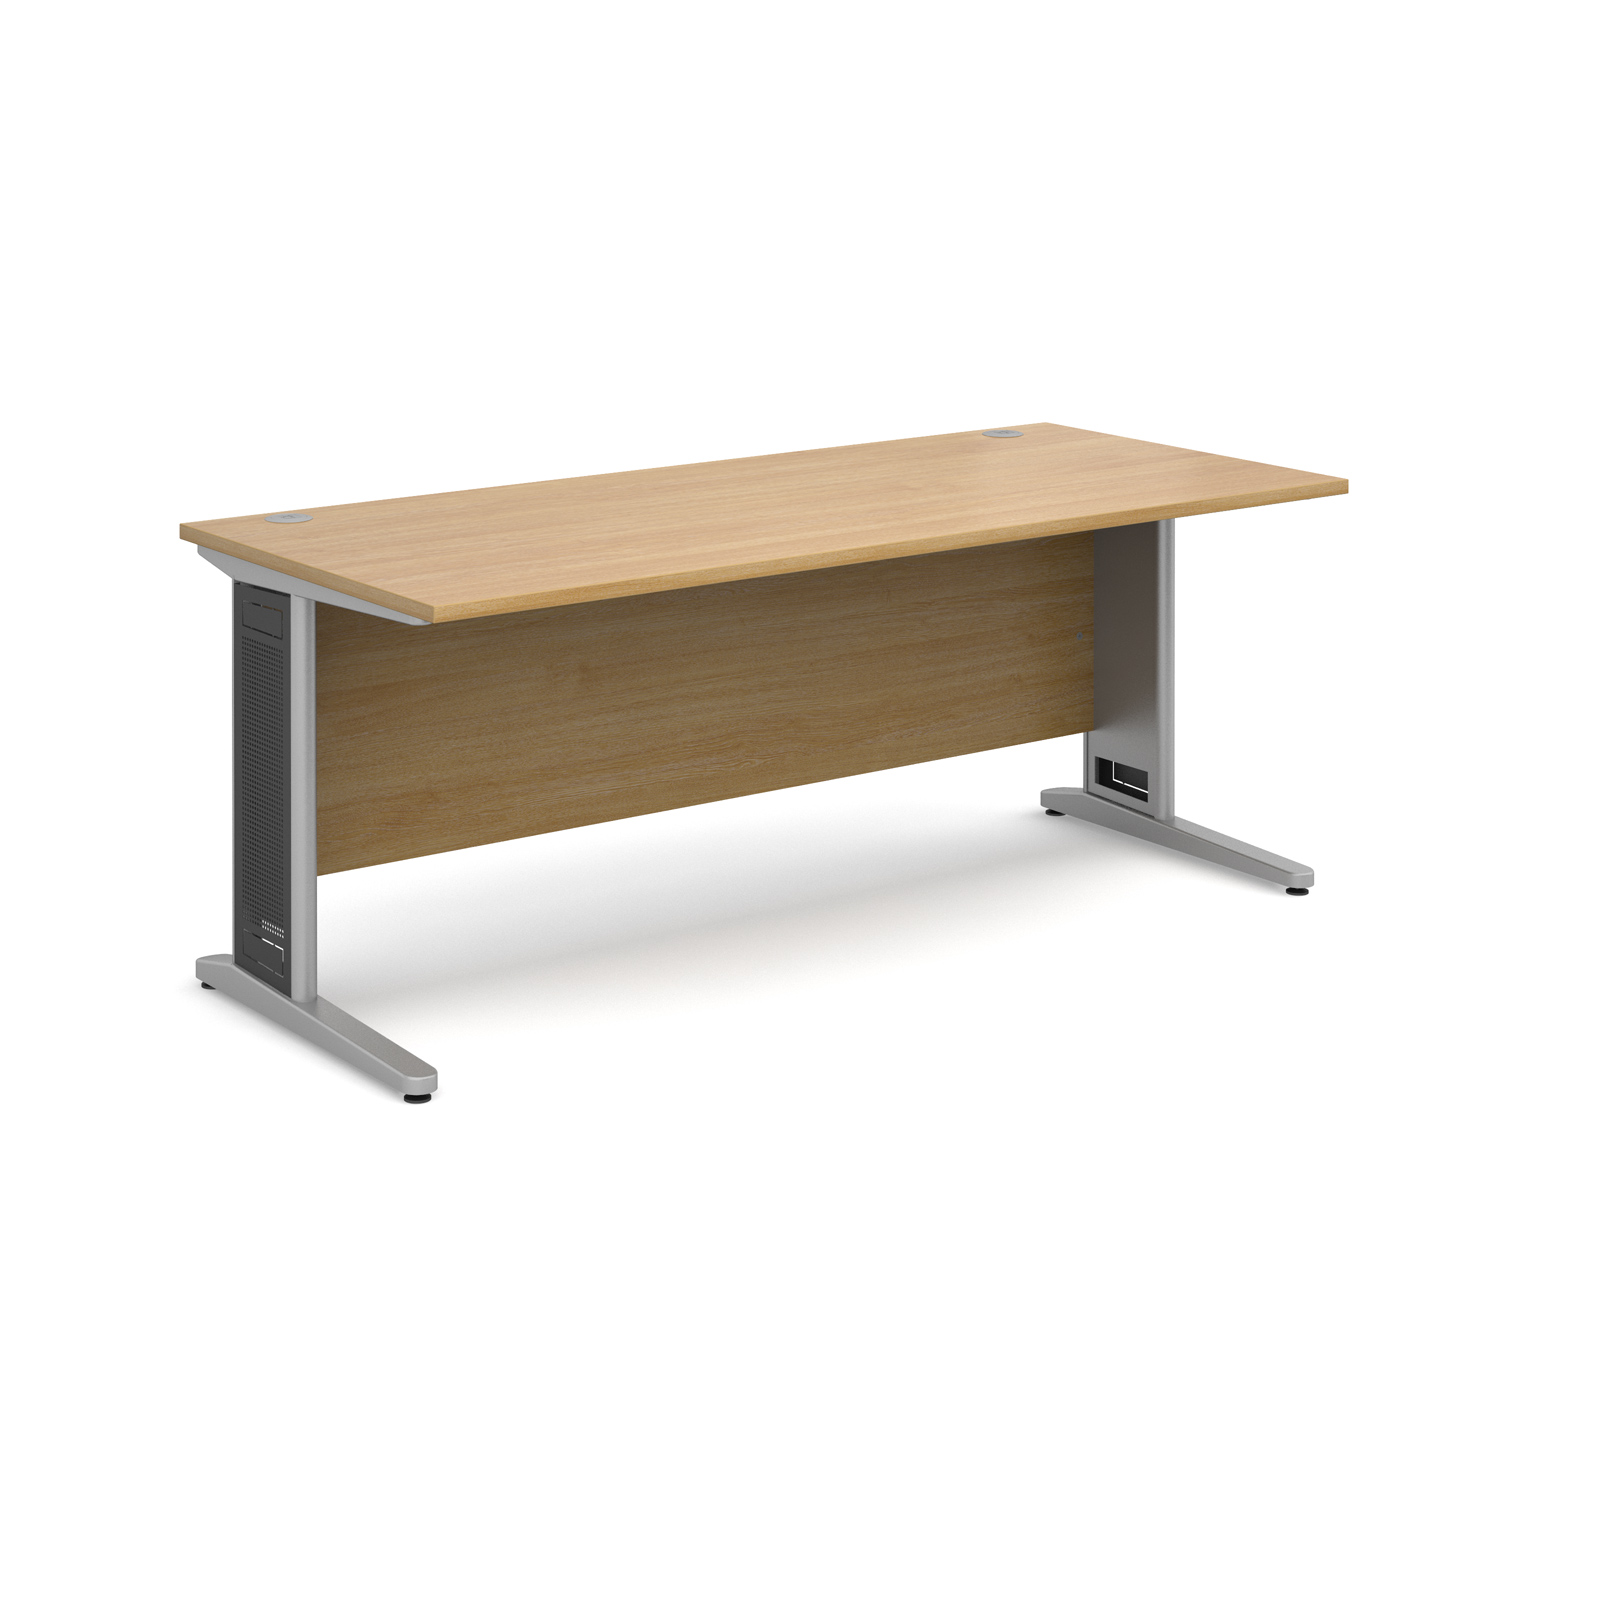 Largo straight desk 1800mm x 800mm - silver cantilever frame with removable grill, oak top